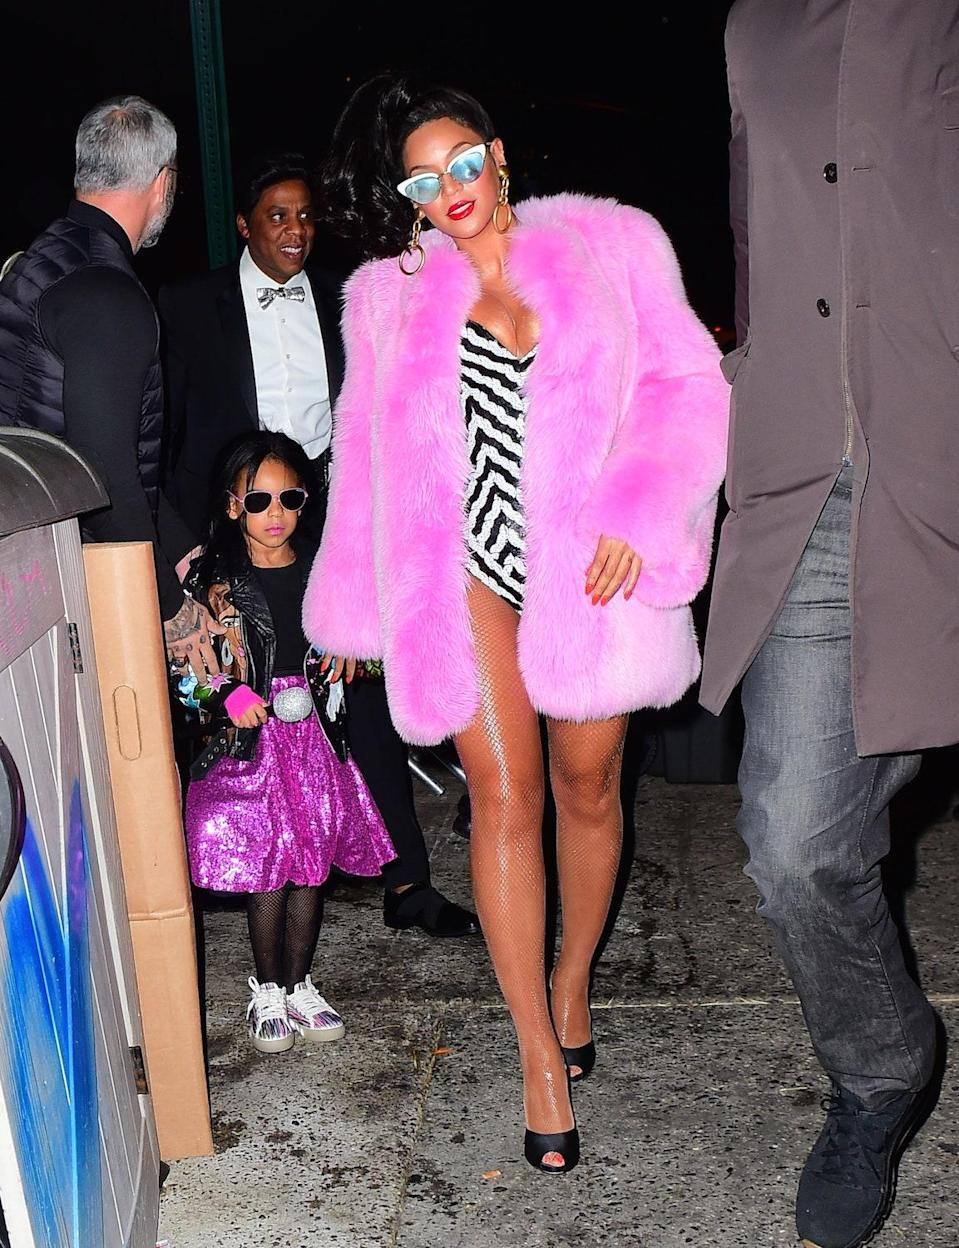 Of course, the Knowles-Carter family goes all out for Halloween.